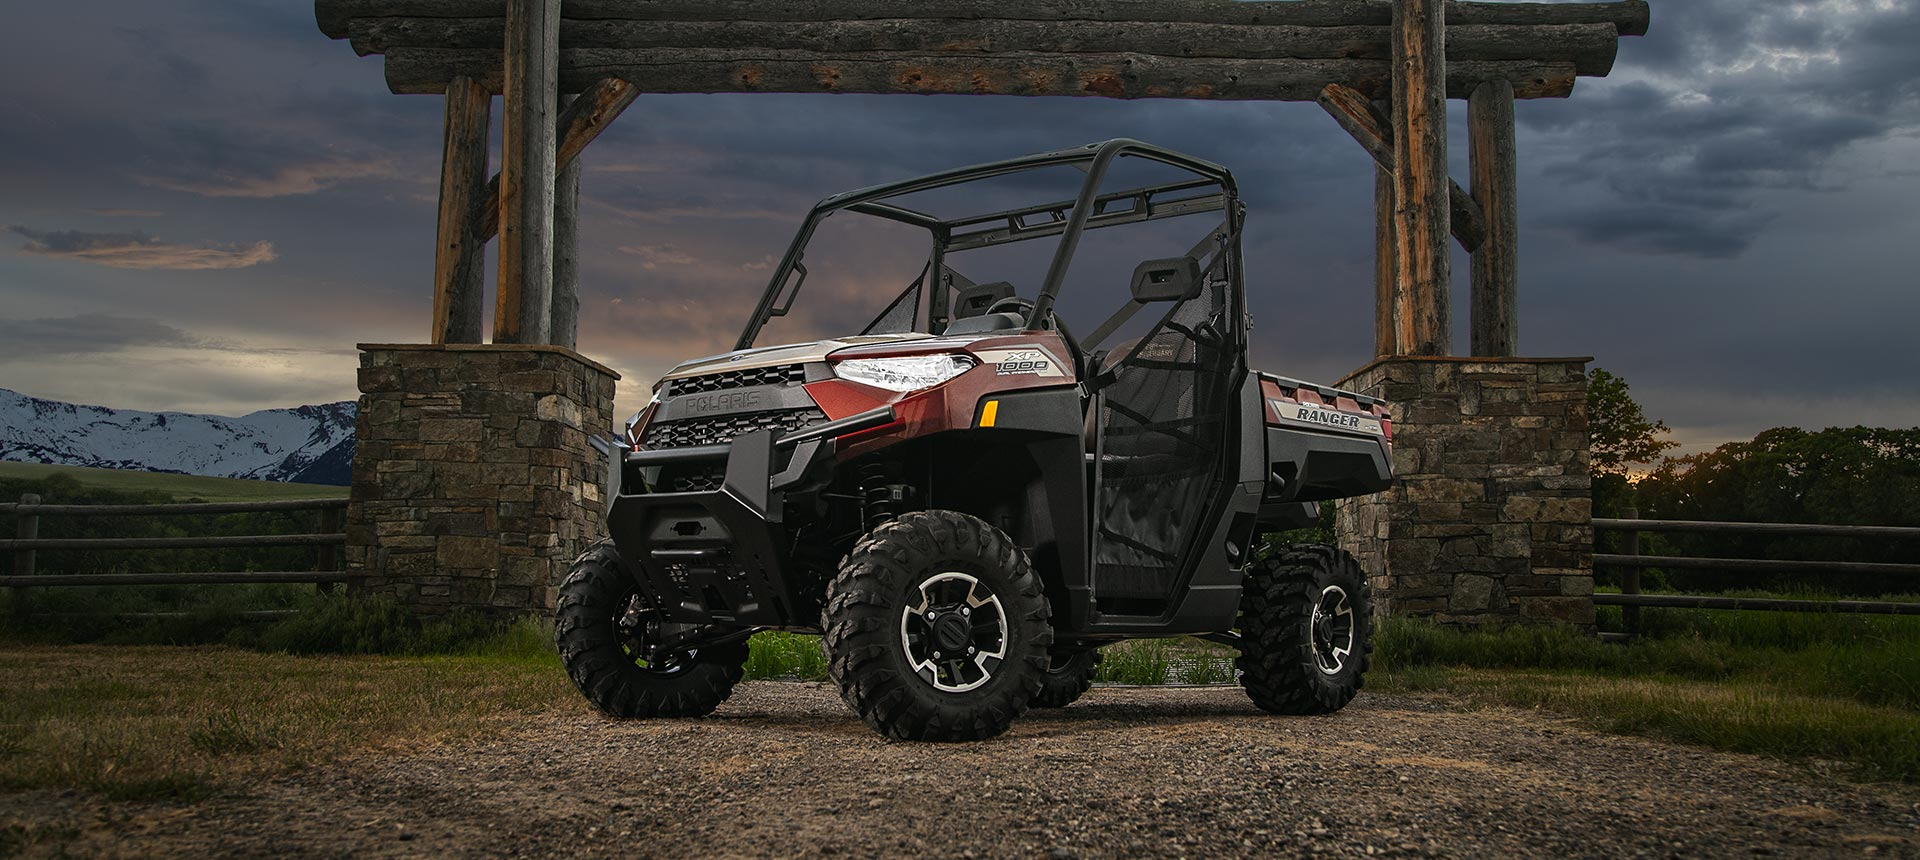 2019 Polaris Ranger XP 1000 EPS in Three Lakes, Wisconsin - Photo 8